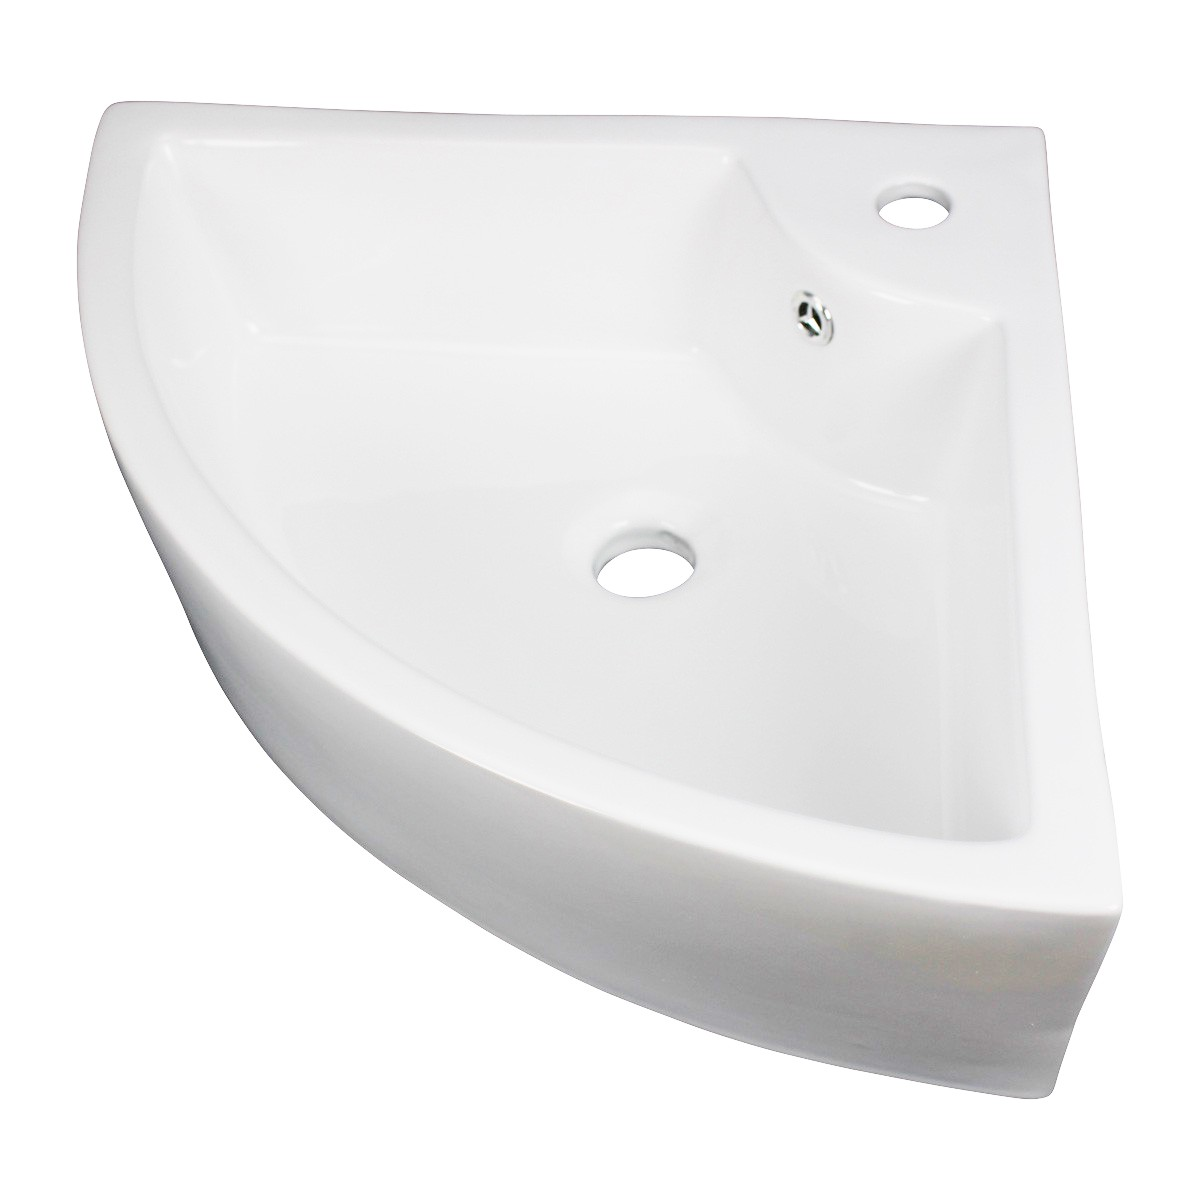 Small Bathroom Corner Sink Above Counter Angled Vessel Faucet Hole and Overflow bathroom vessel sinks Countertop vessel sink Corner Bathroom Sink